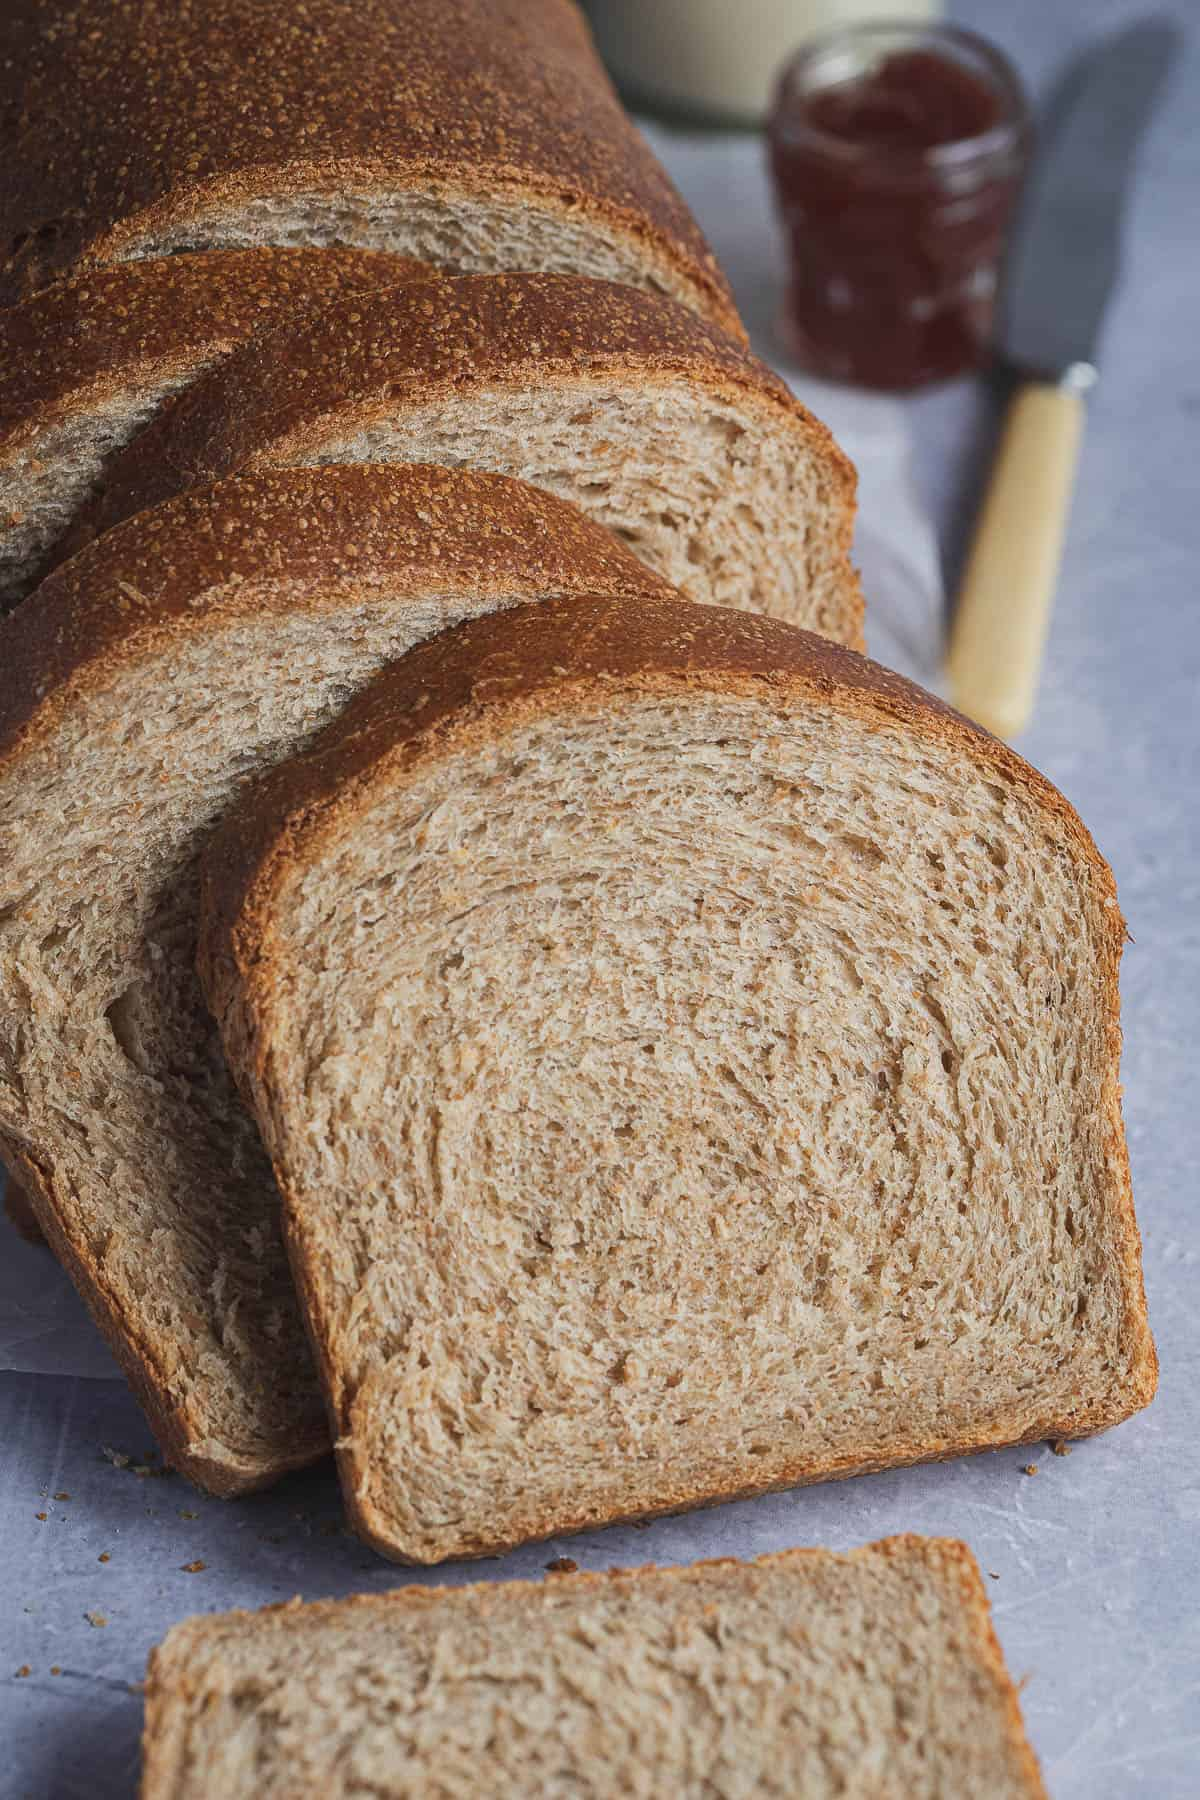 Close up of a slice of wholemeal bread.